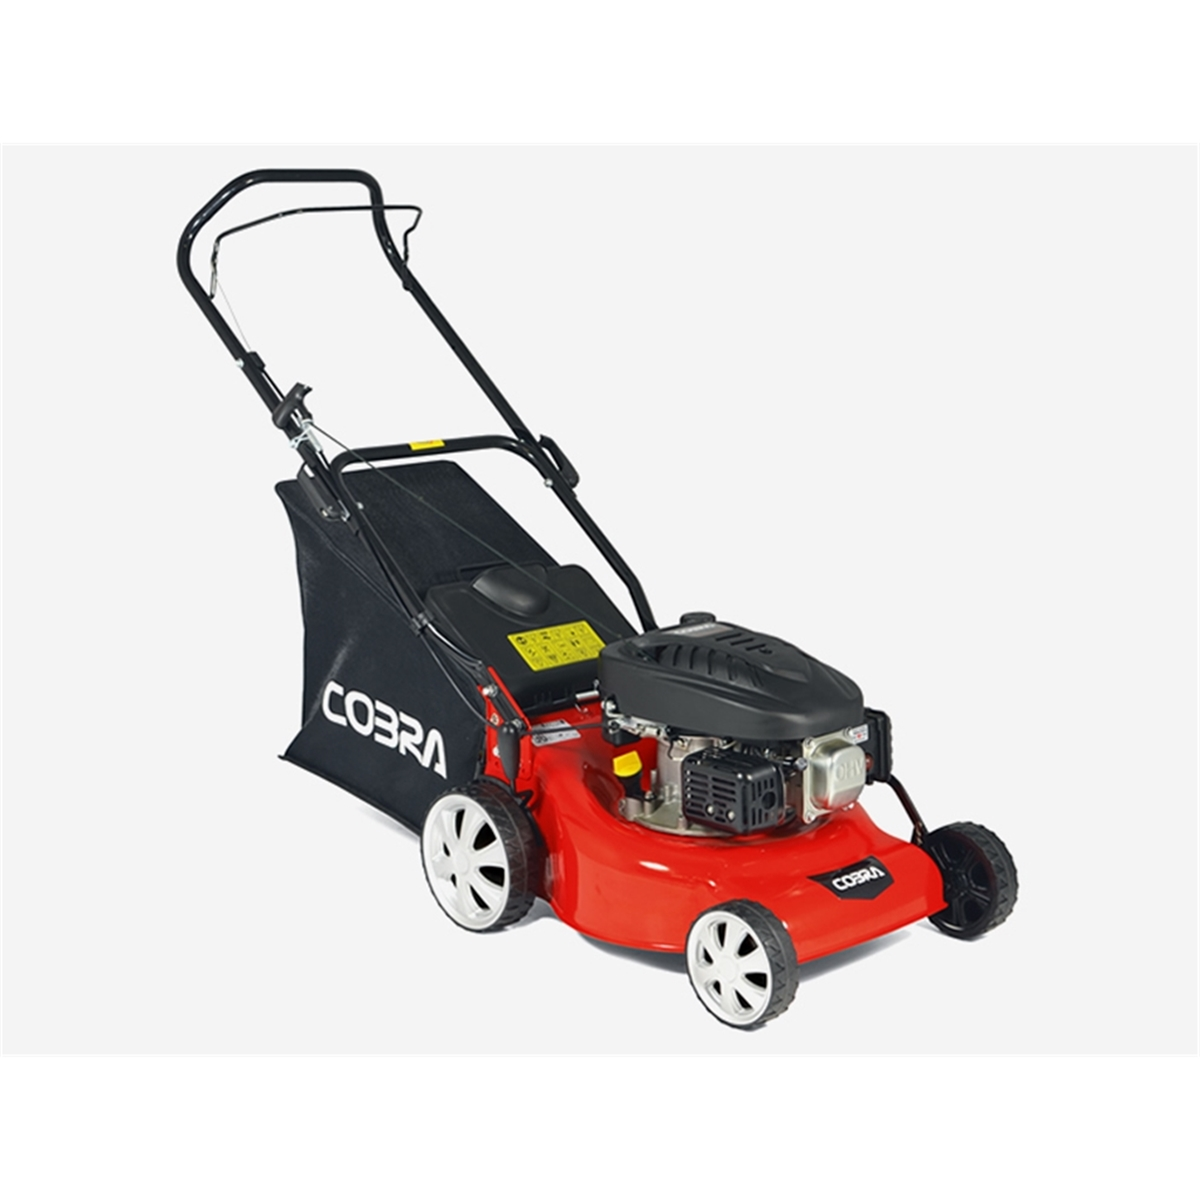 Petrol Rotary Lawnmower - 40cm - Cobra M40B - Free Oil and